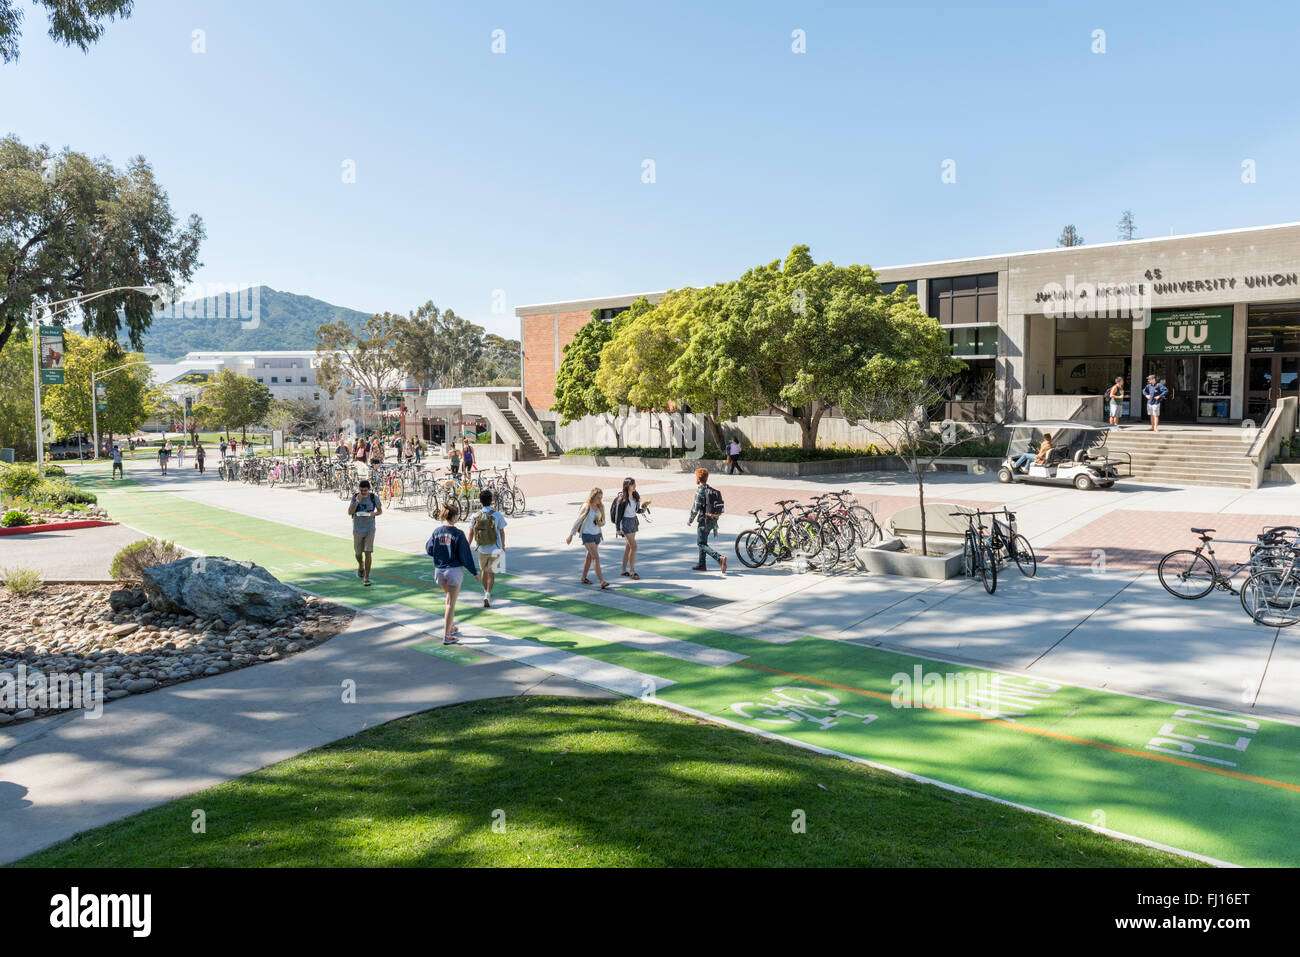 Campus, student union building and students at California Polytechnic State University, (Cal Poly) at San Luis Obispo, - Stock Image